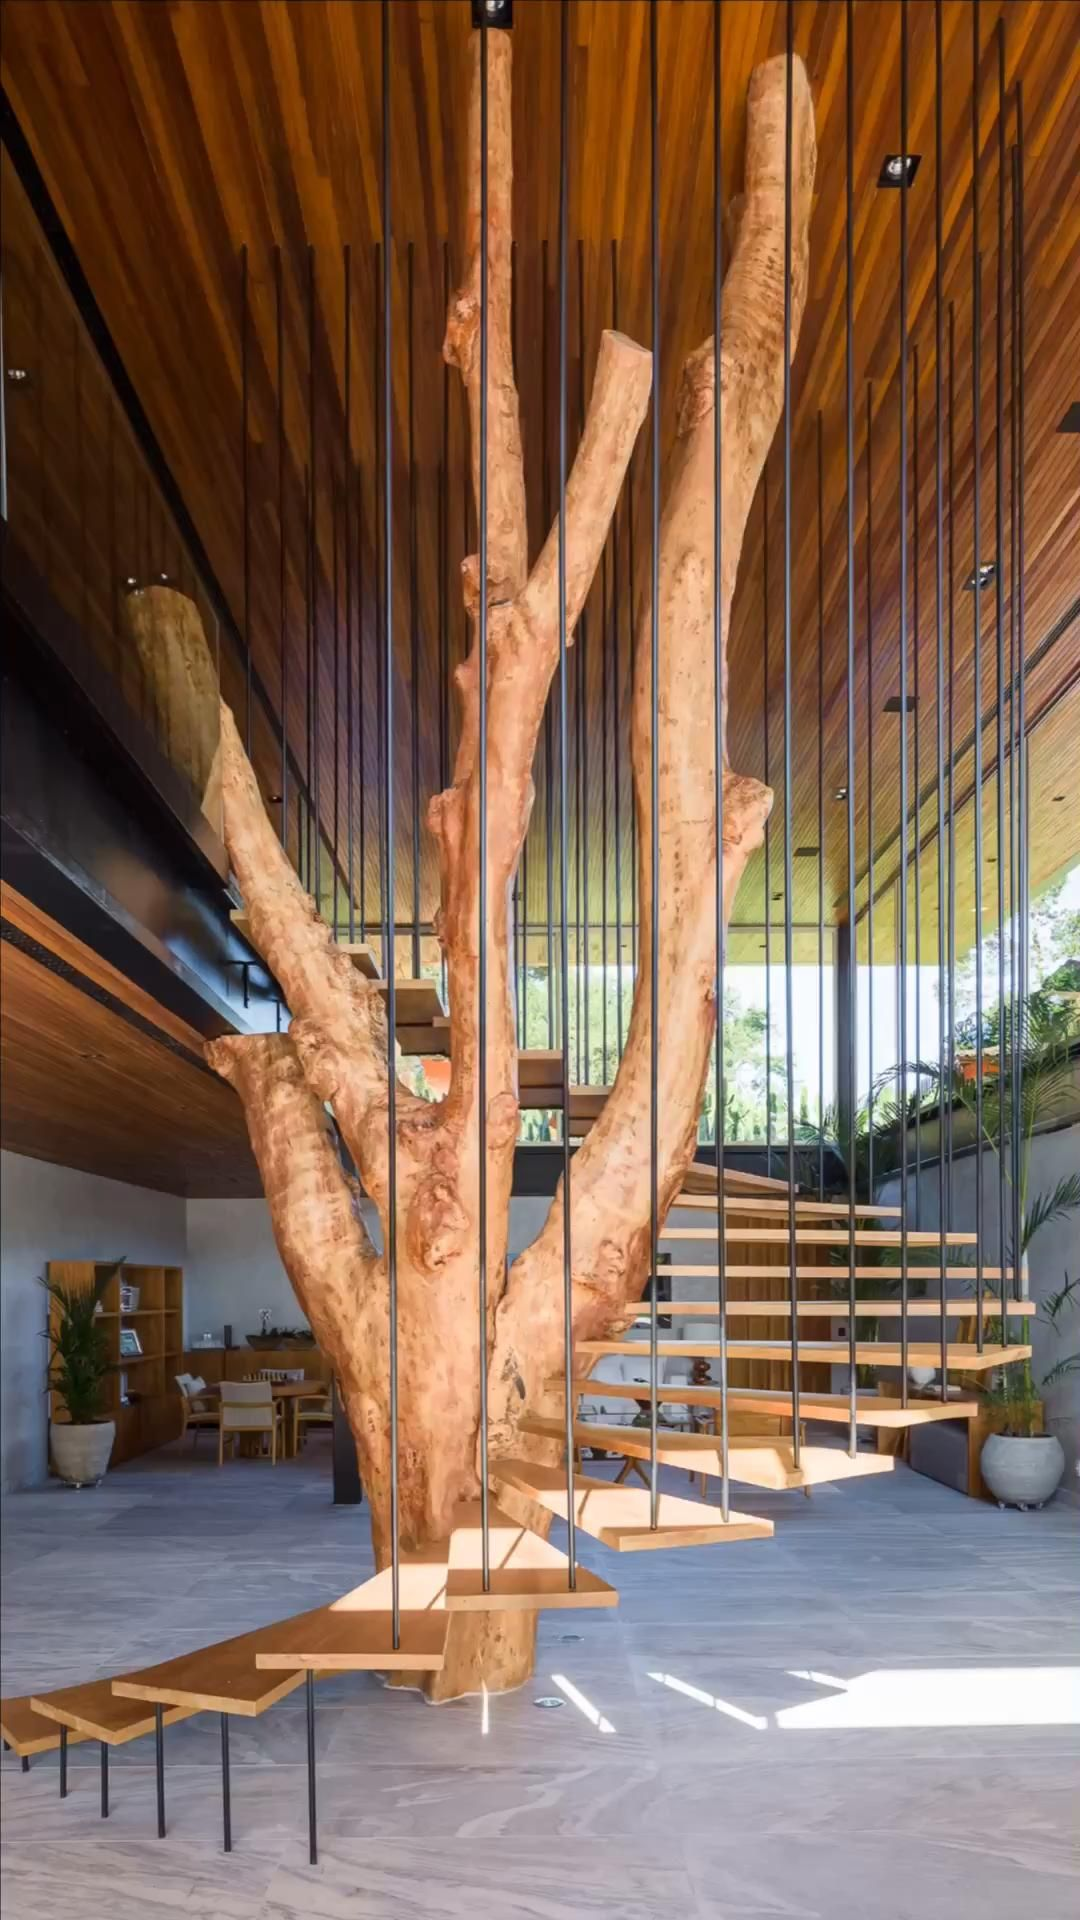 The Sao Paulo-based architecture firm Klam Arquitetura led by Anderson Muniz has descined Z.C. Residence, a single-family home located in Ubatuba, São Paulo, Brazil.  #brazil #tree #treehouse #saopaulo #wood  #architecture #architect #amazing #travel #amazing #decor #interior #interiordesignideas #interiordesigner #design #diy #home #house  #staircase #staircaseideas #staircaserailings